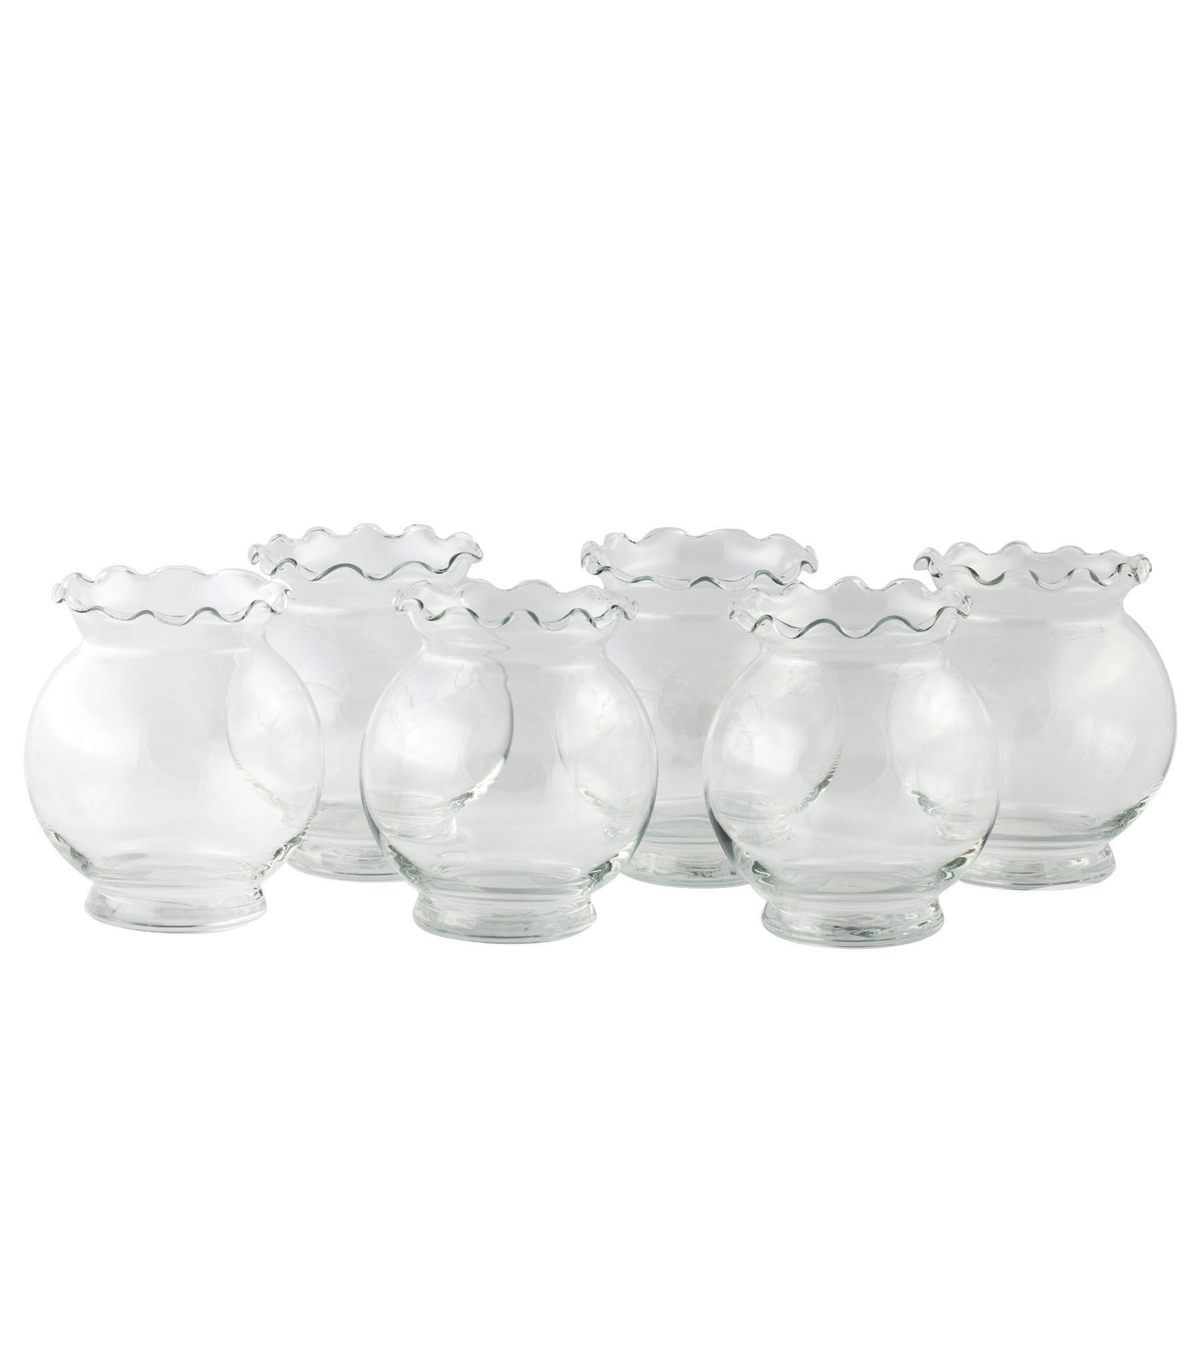 Libbey Crimp Ivy Bowl 6 Piece